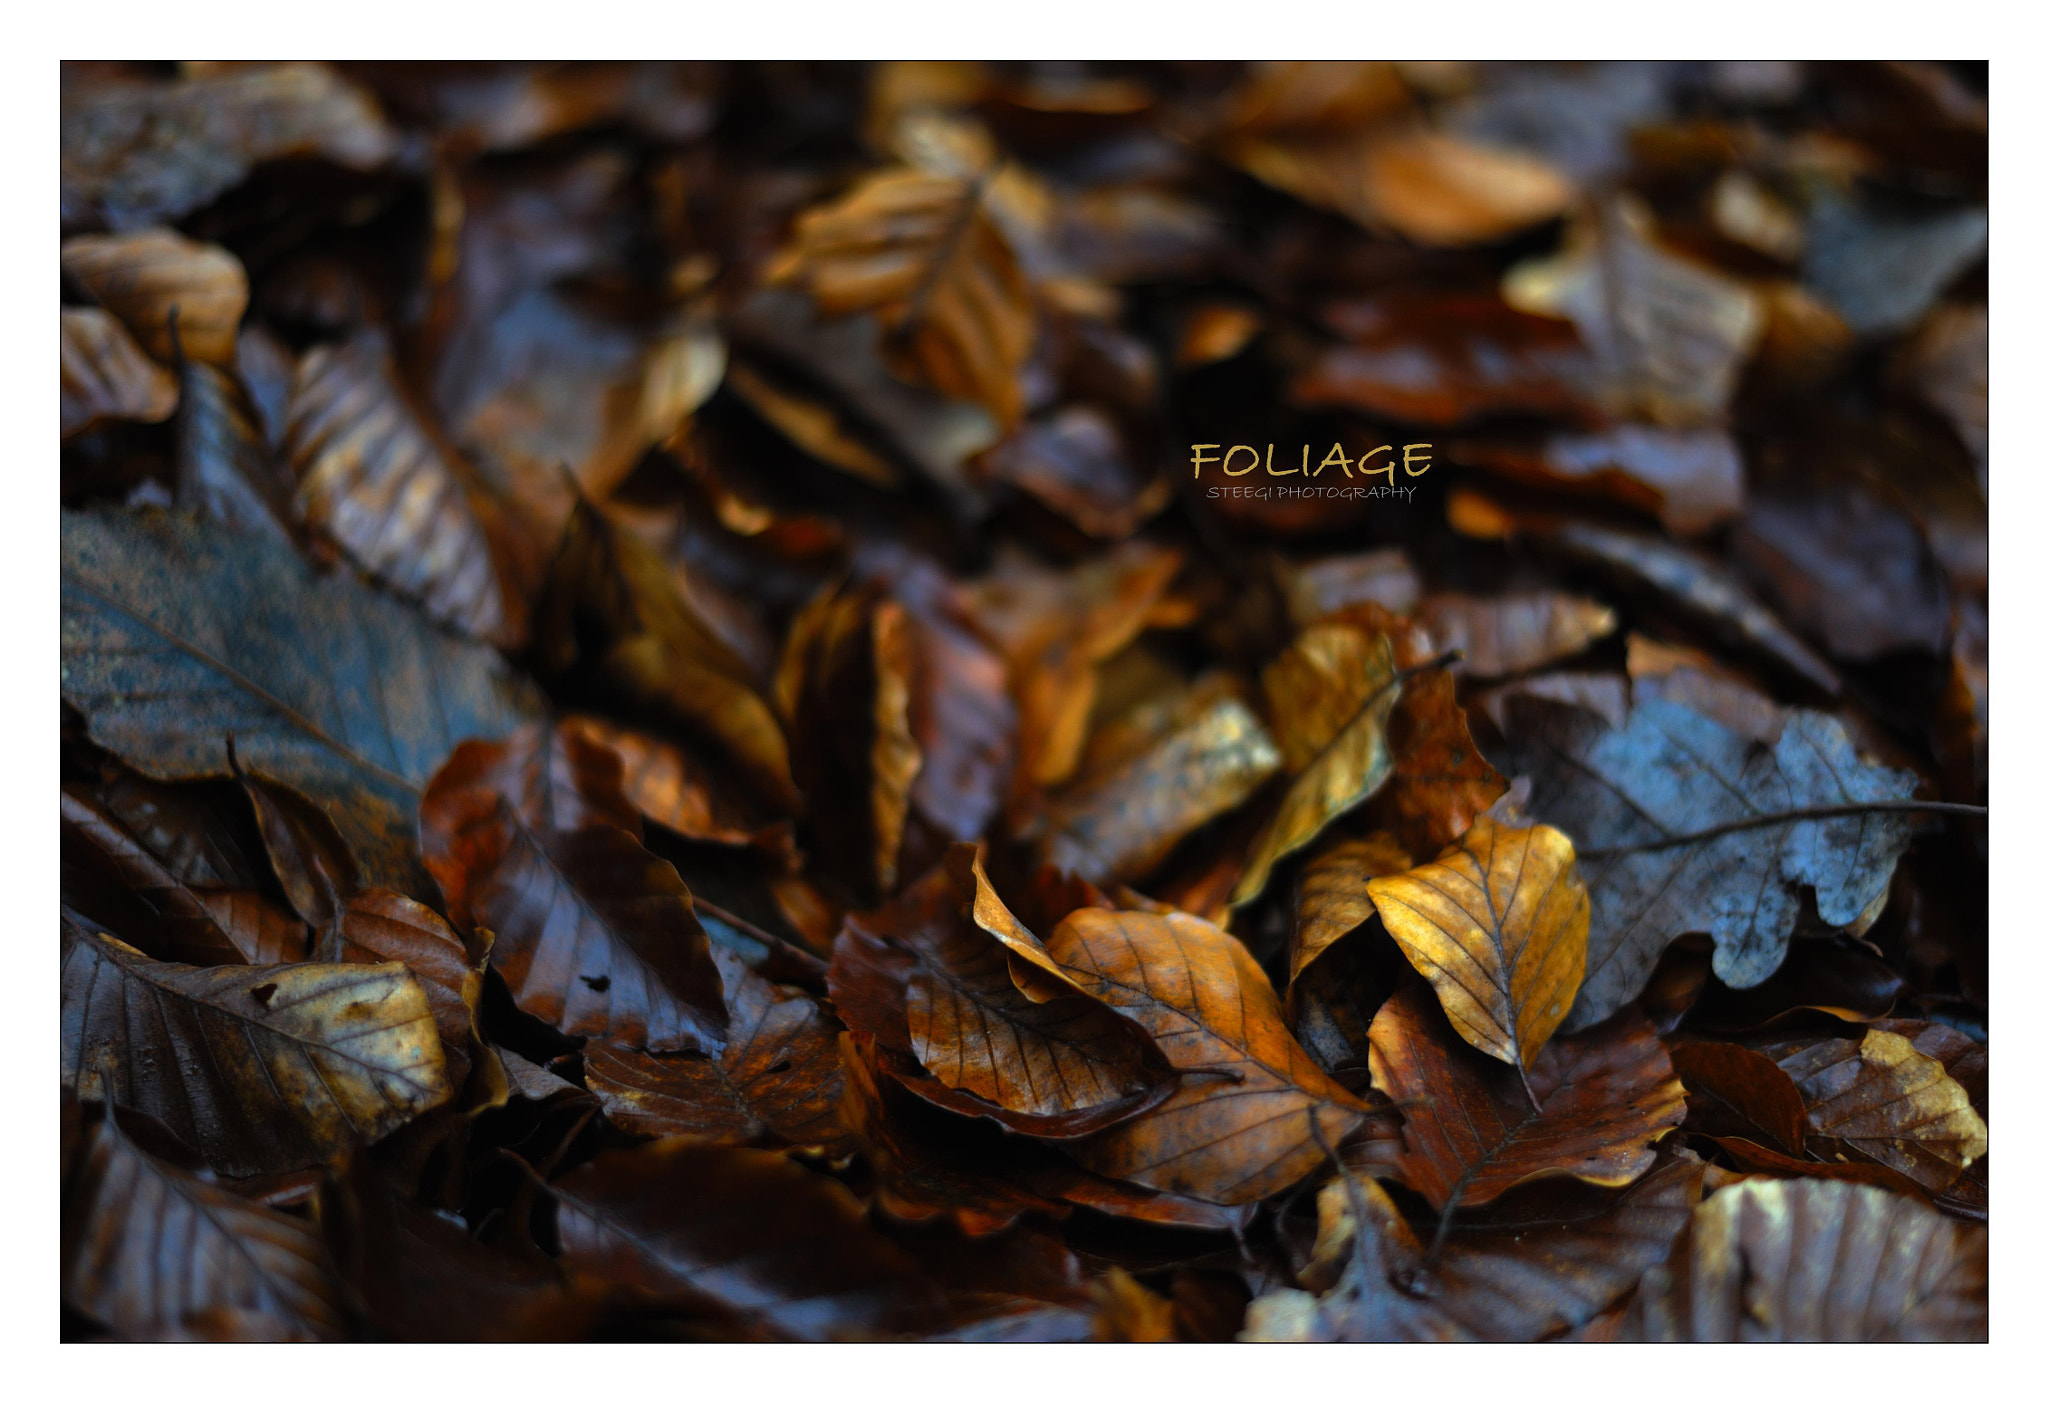 Photograph Foliage by Andreas Steegmann on 500px